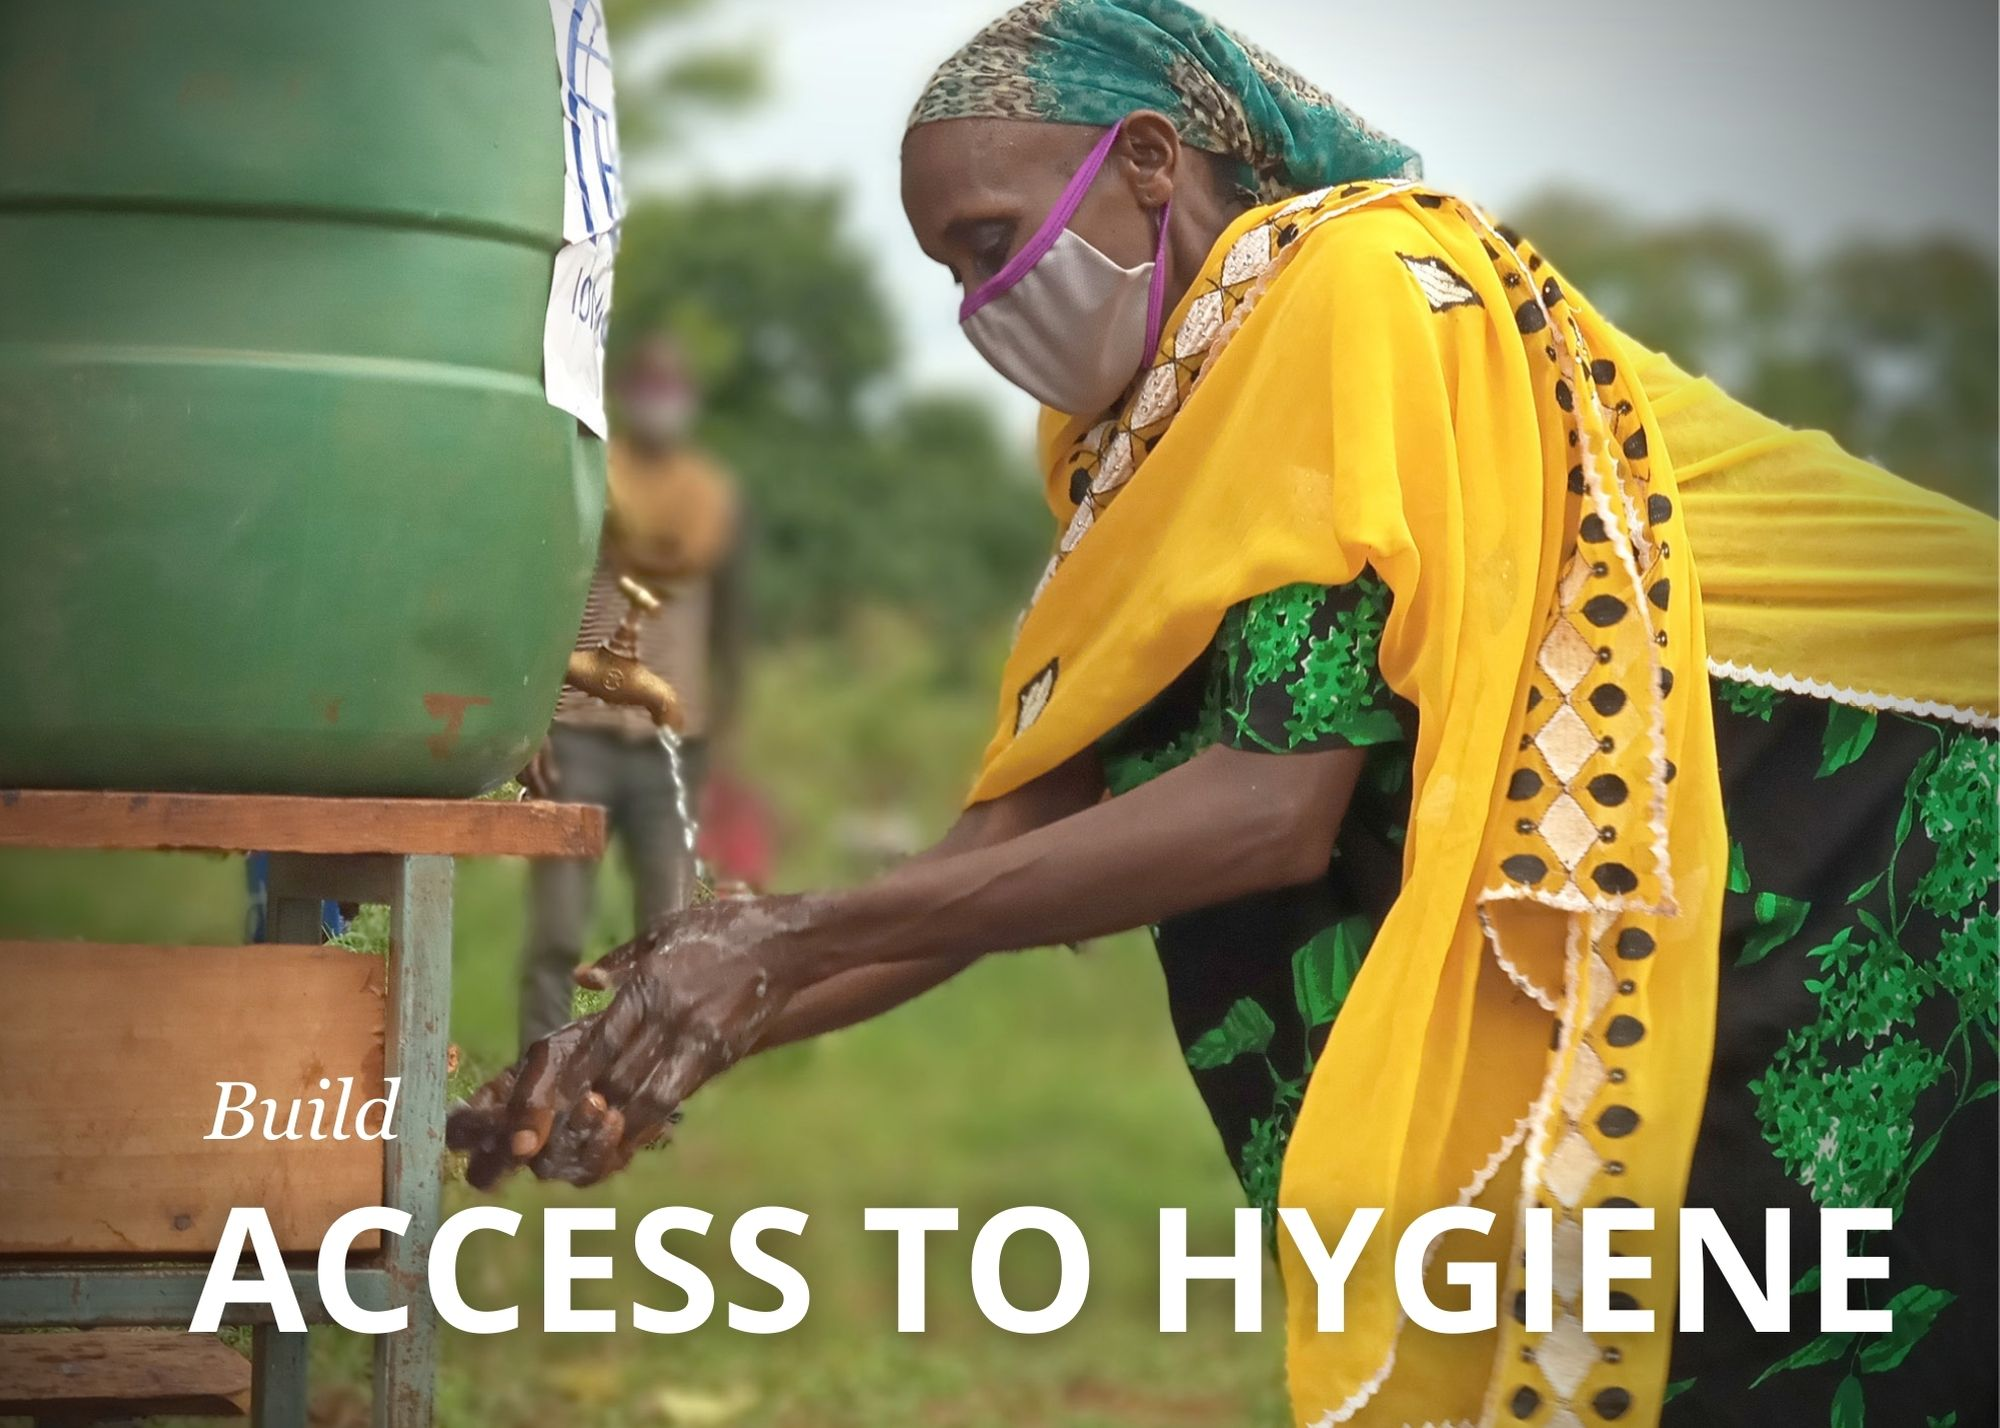 Build access to hygiene